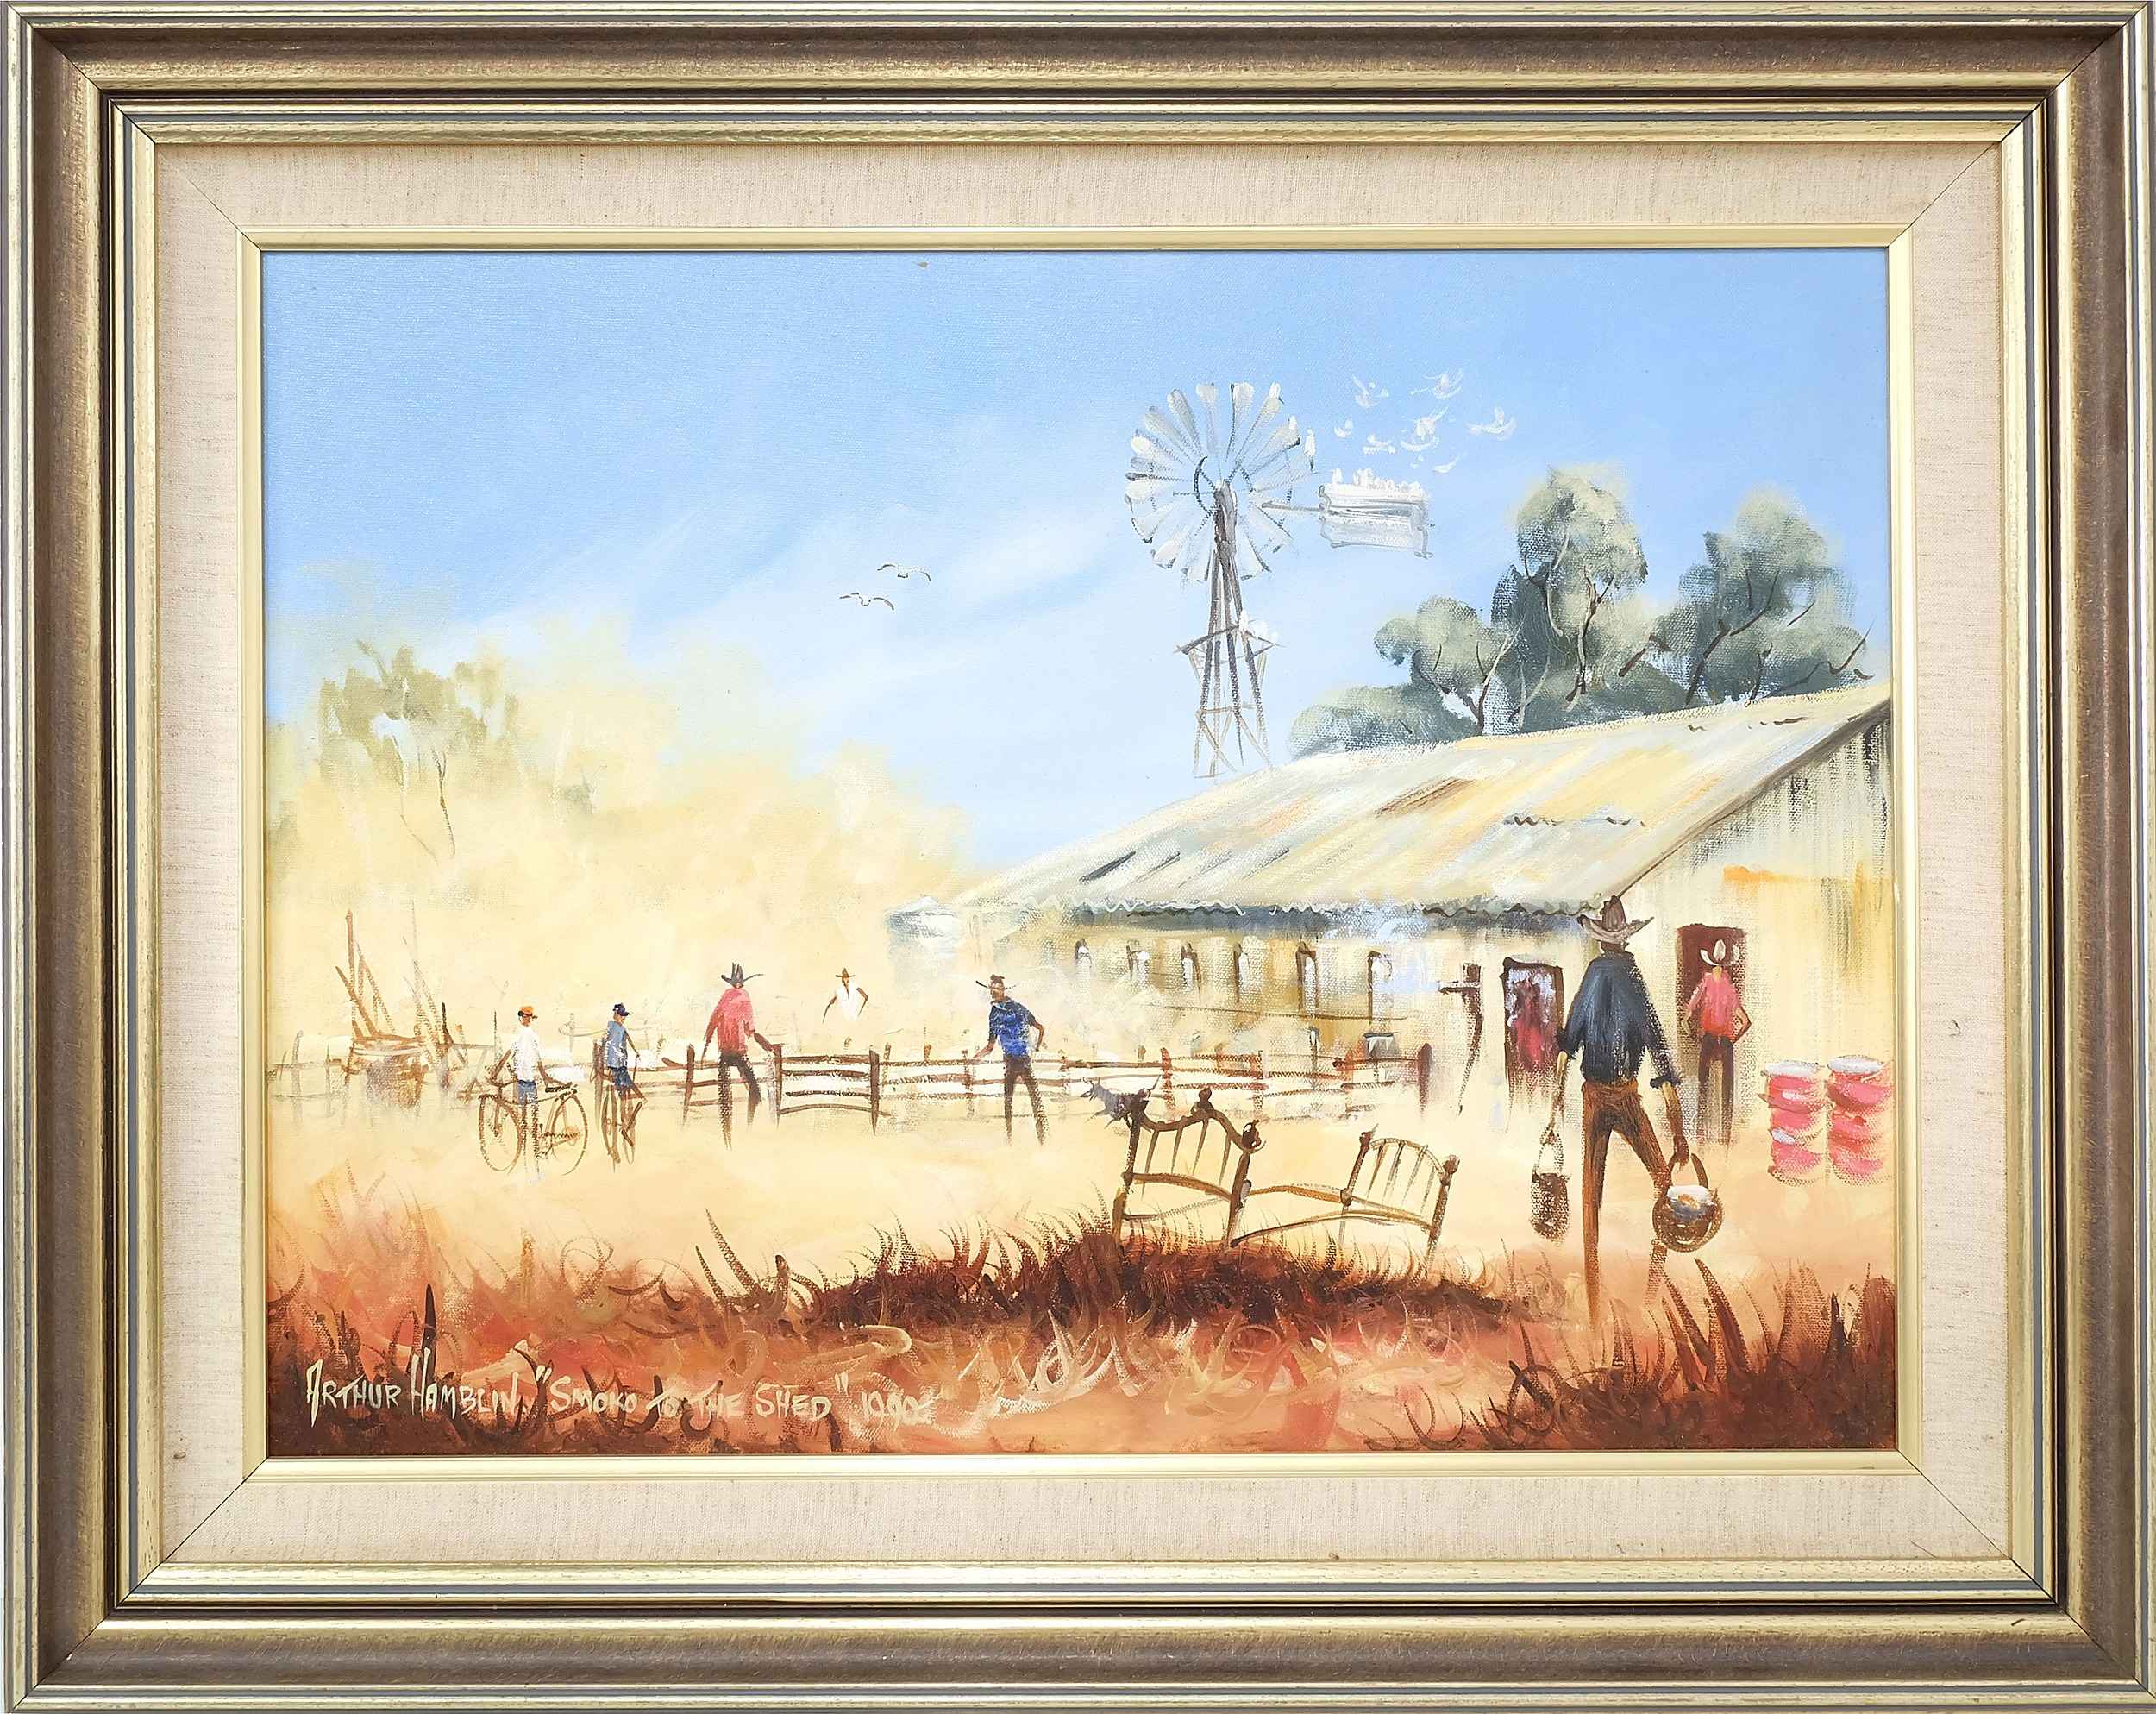 'Arthur Hamblin (1933-) Smoko to the Shed Oil on Canvas'